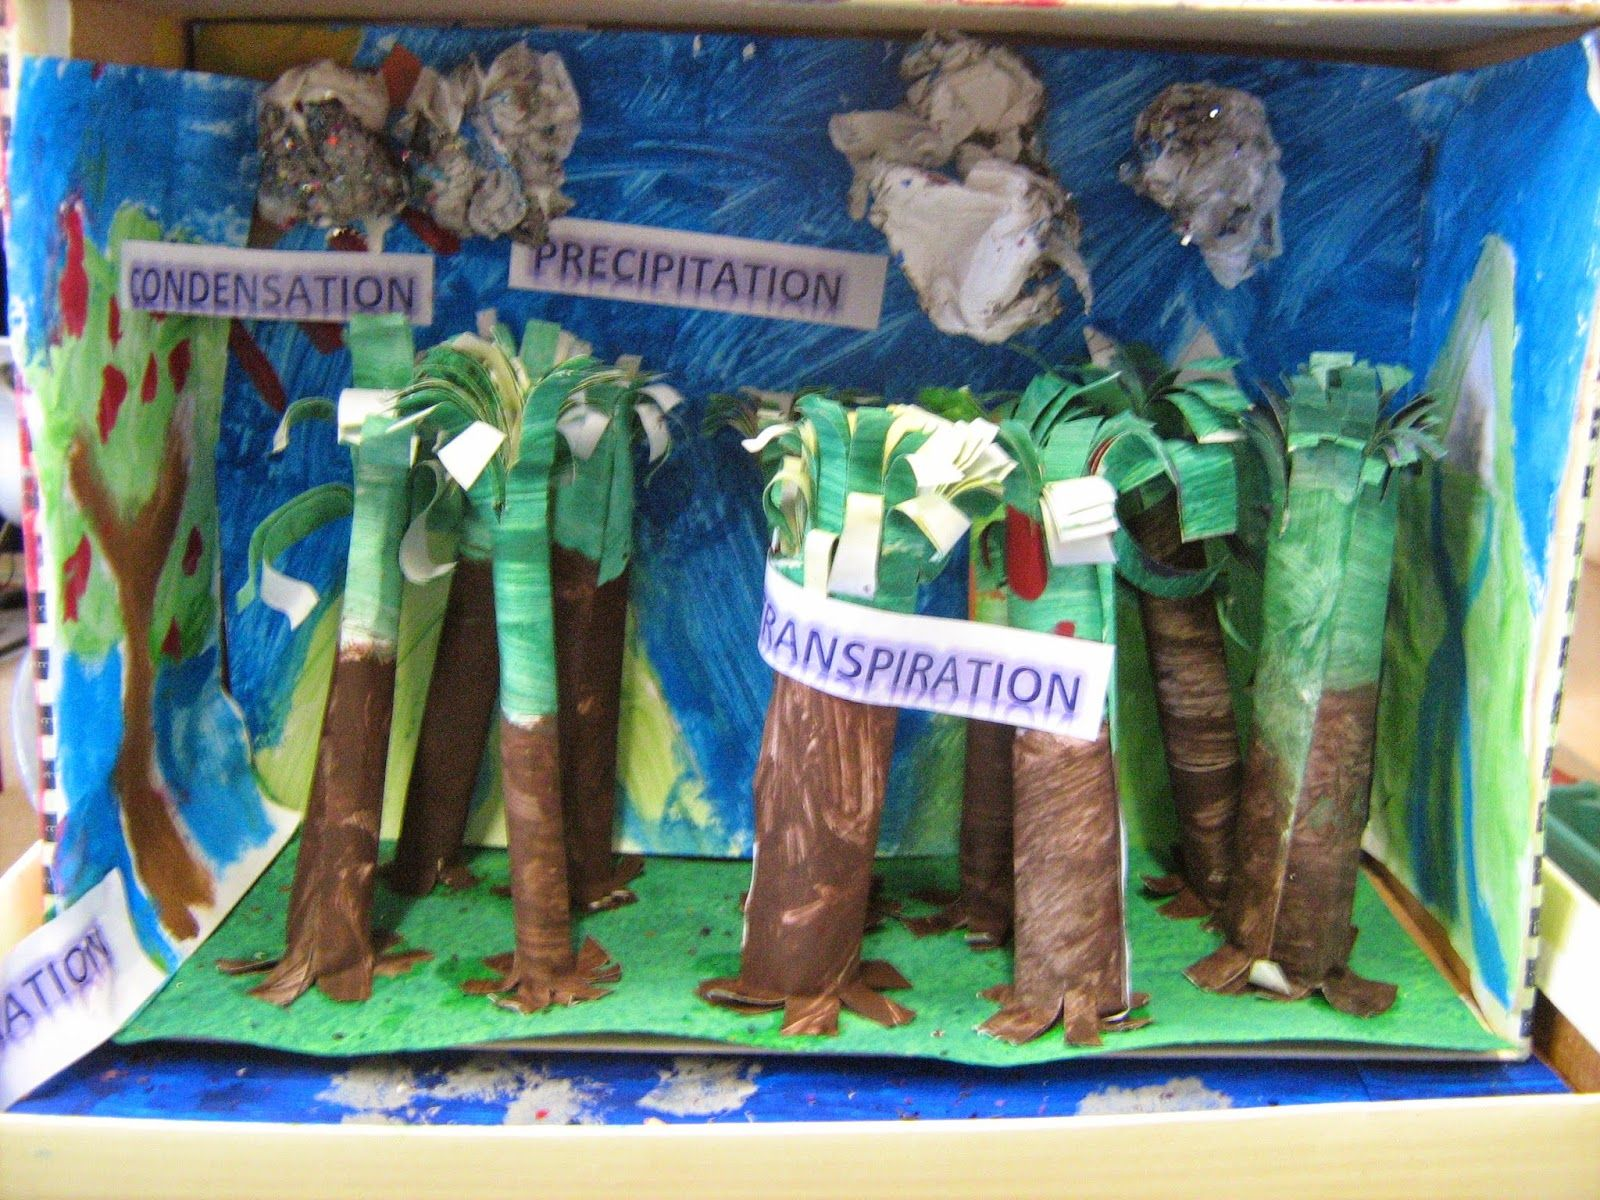 3d Diorama Of The Water Cycle In A Rainforest